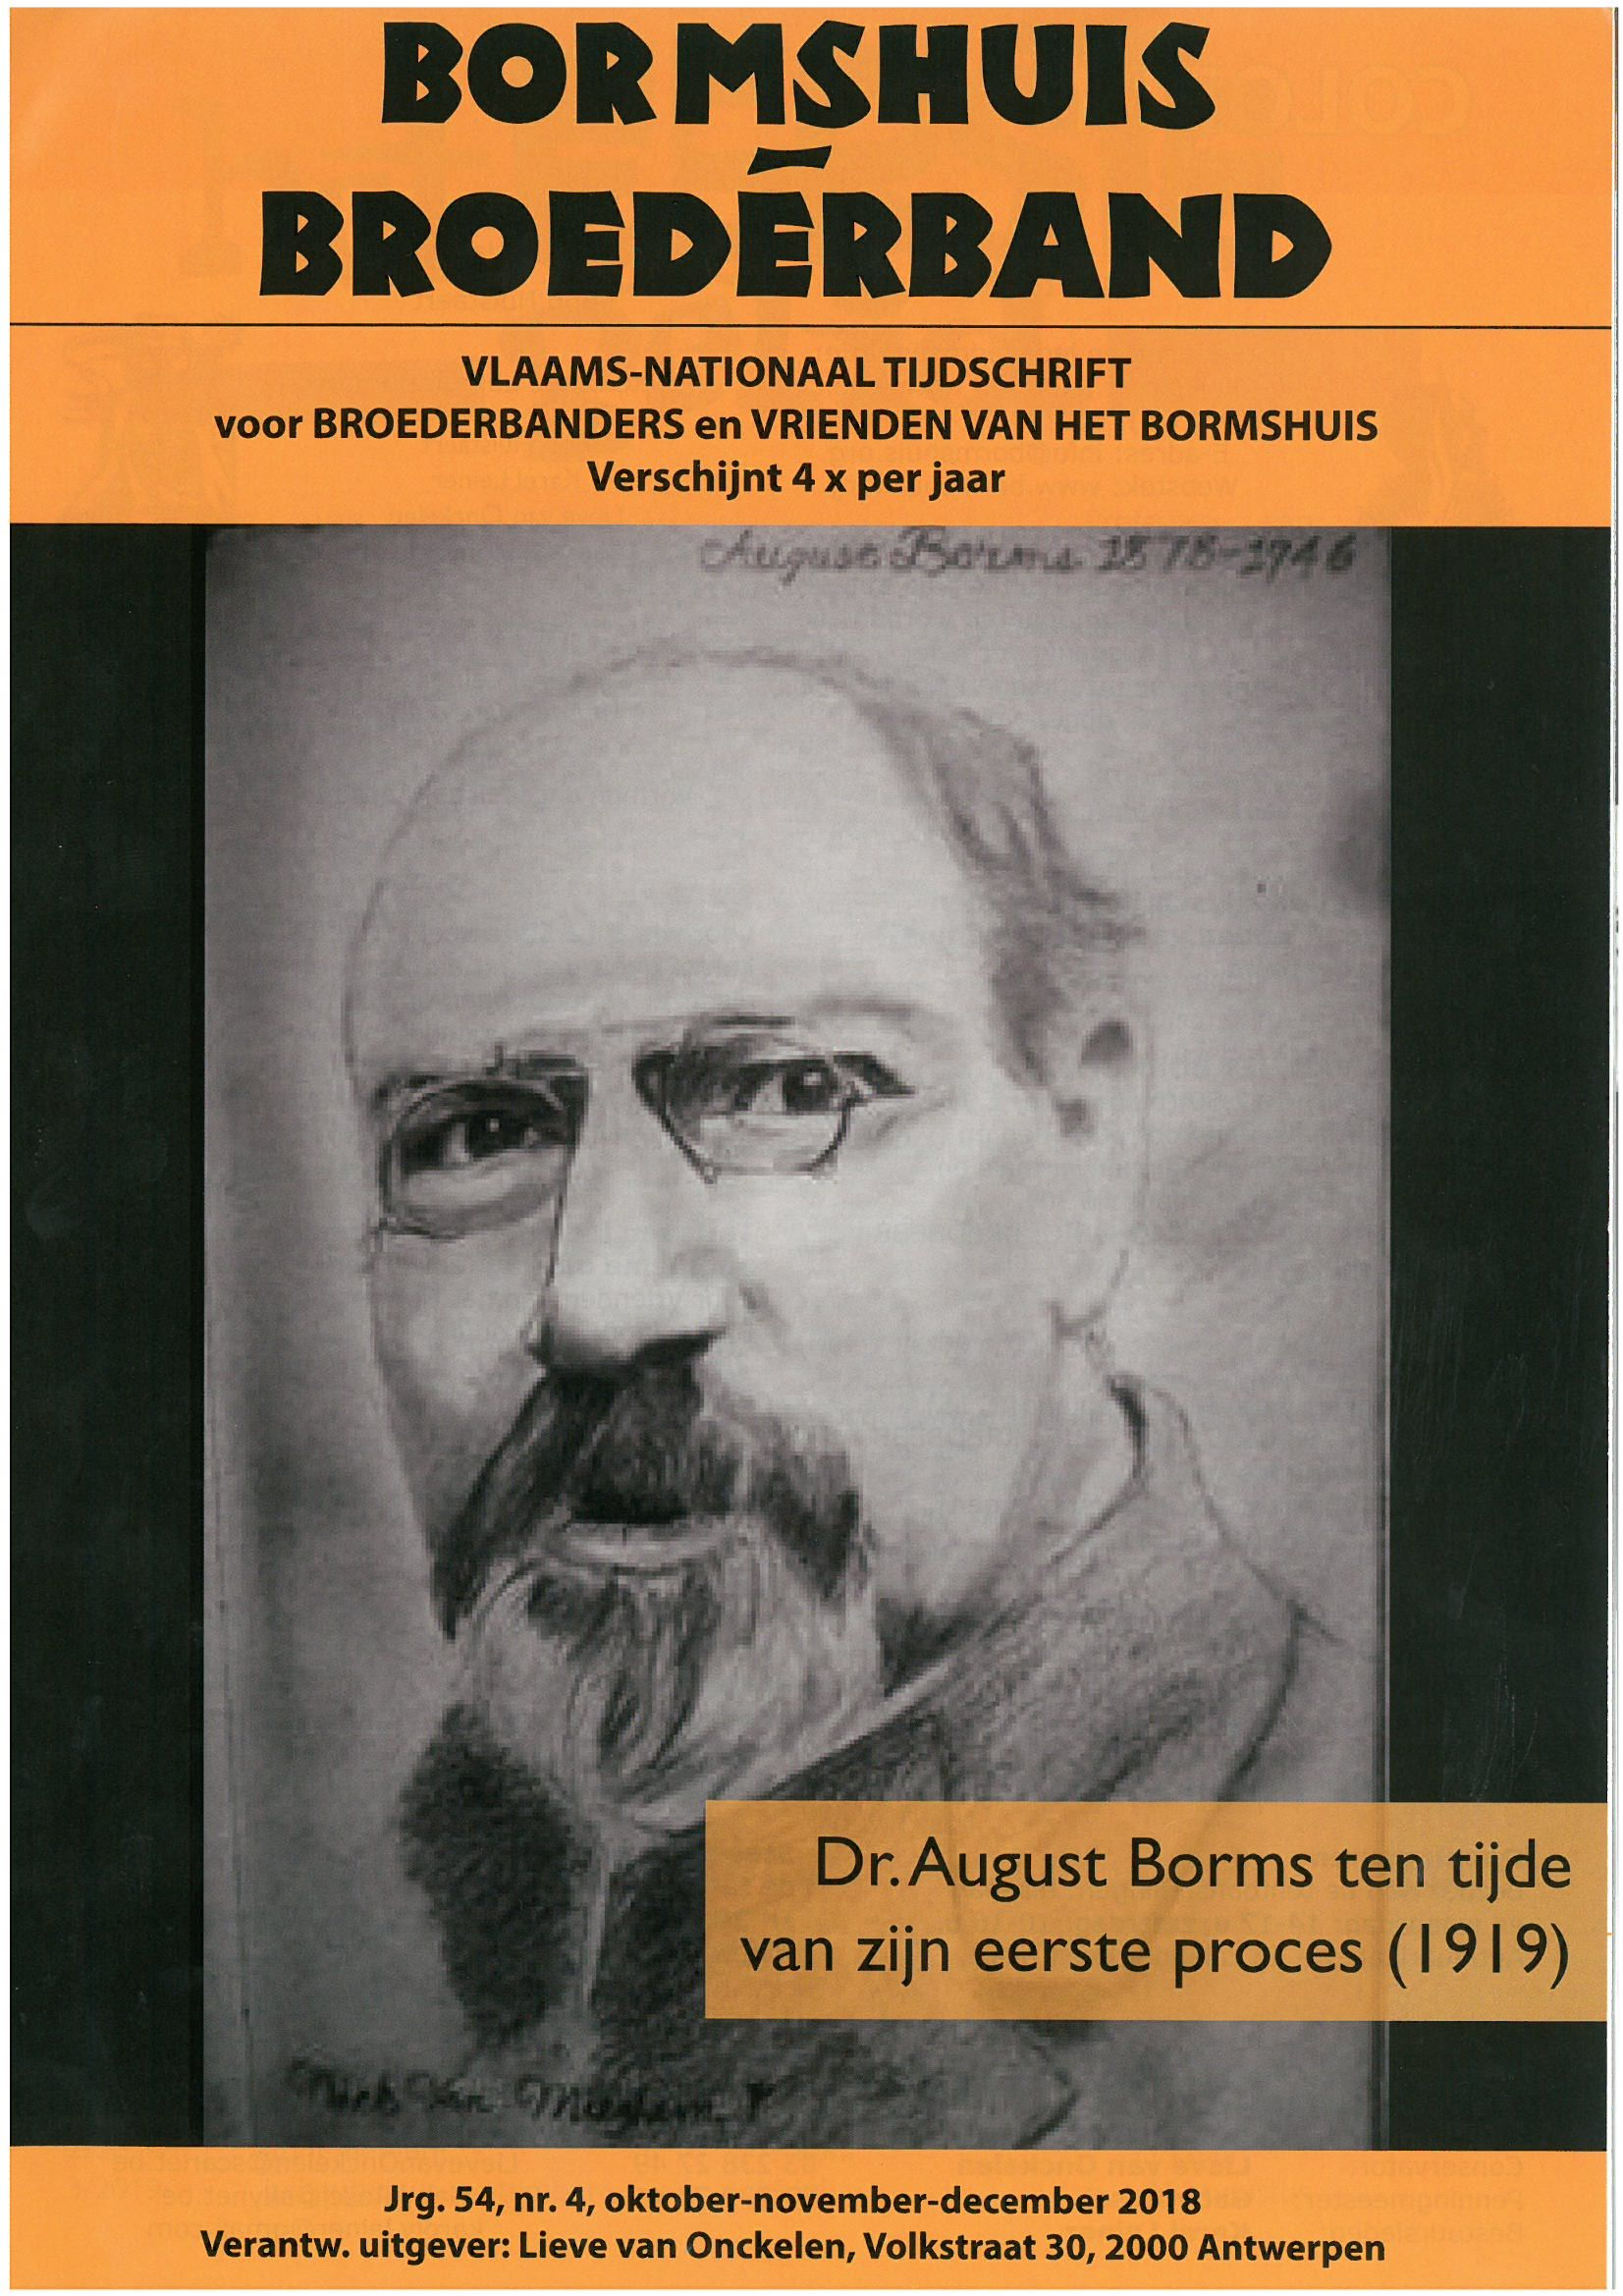 'Bormshuis Broederband' : Broederband (which has merged with the journal of the  'Bormshuis') is one of the journals from our collection that Steffen Werther consulted for his research.